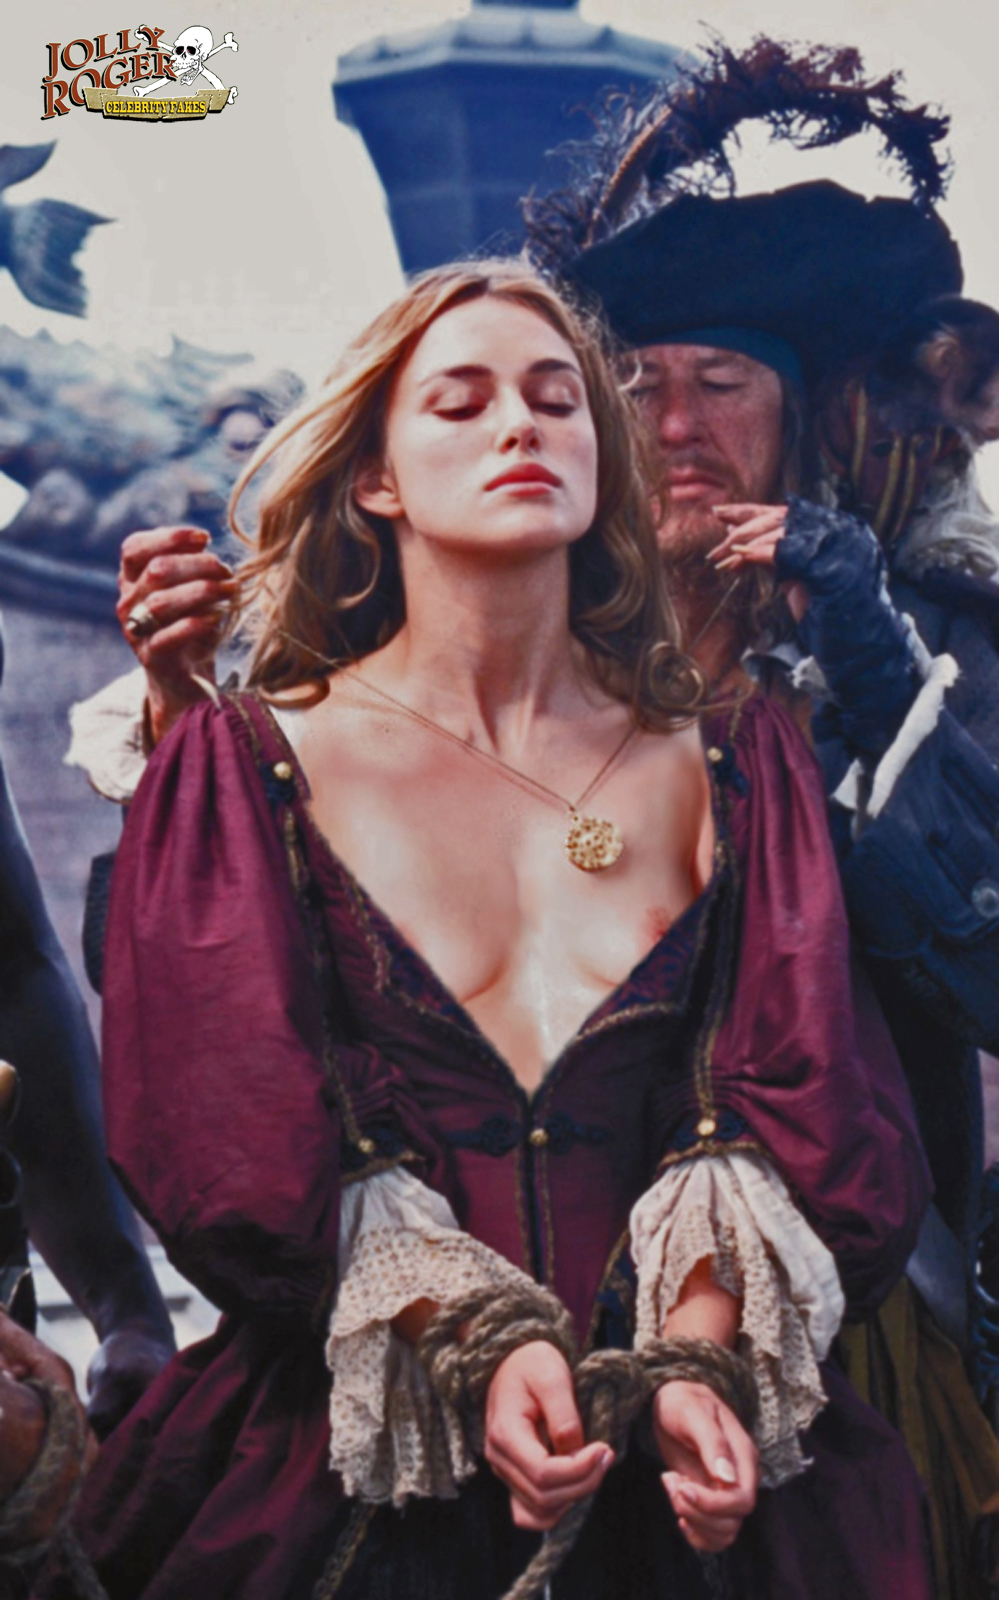 Opinion very Elizabeth swann has sex amusing